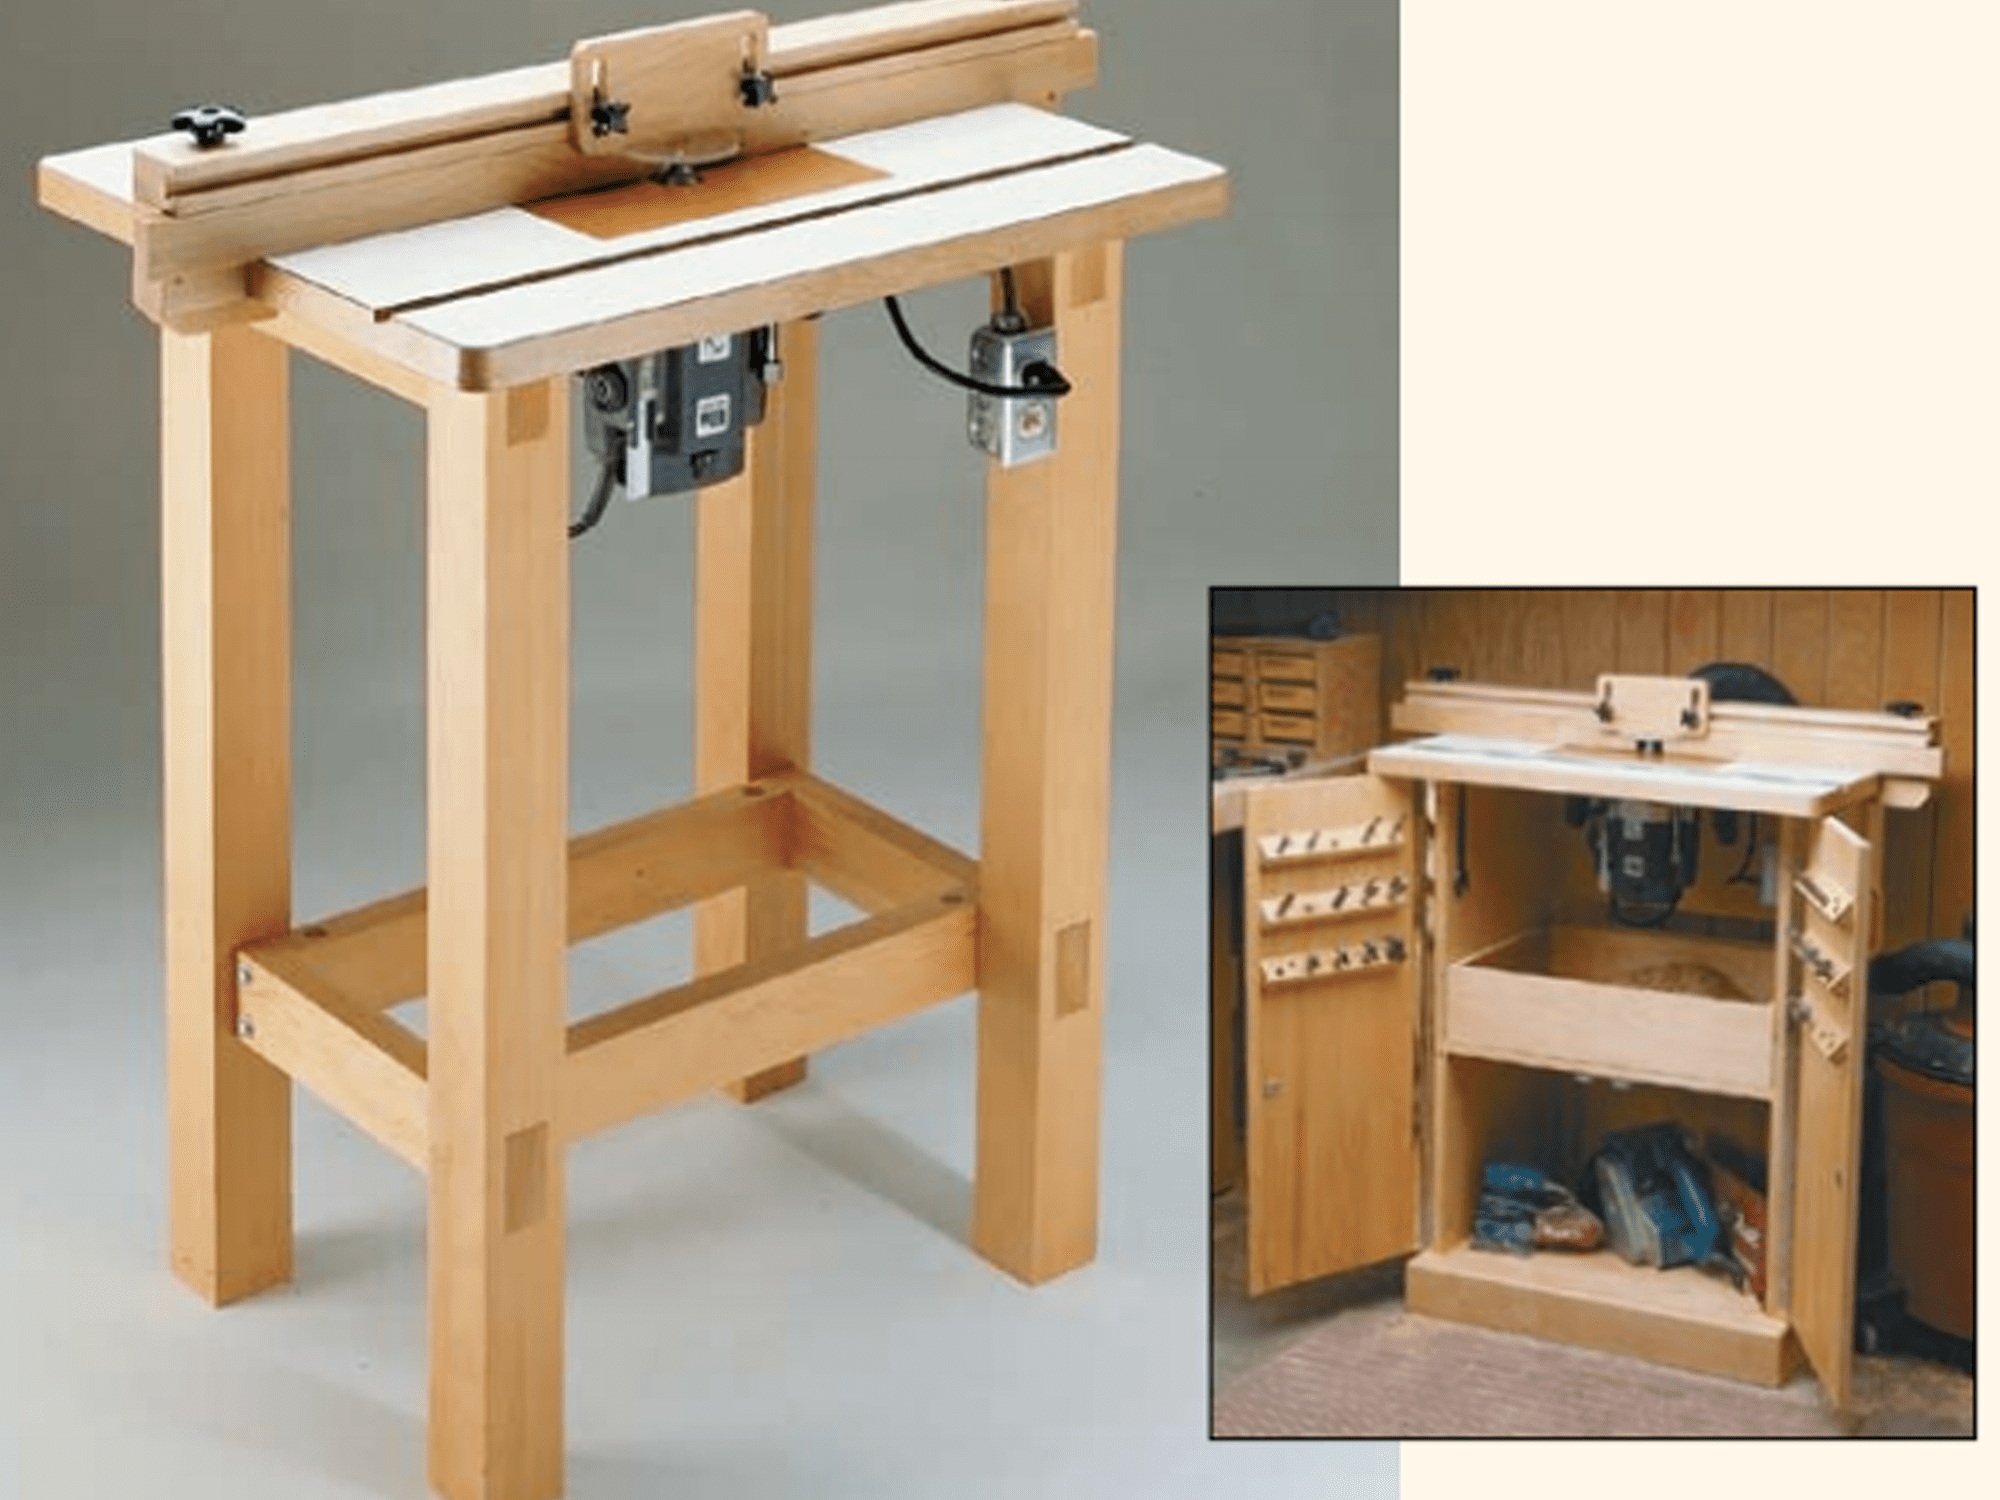 9 free diy router table plans you can use right now greentooth Image collections